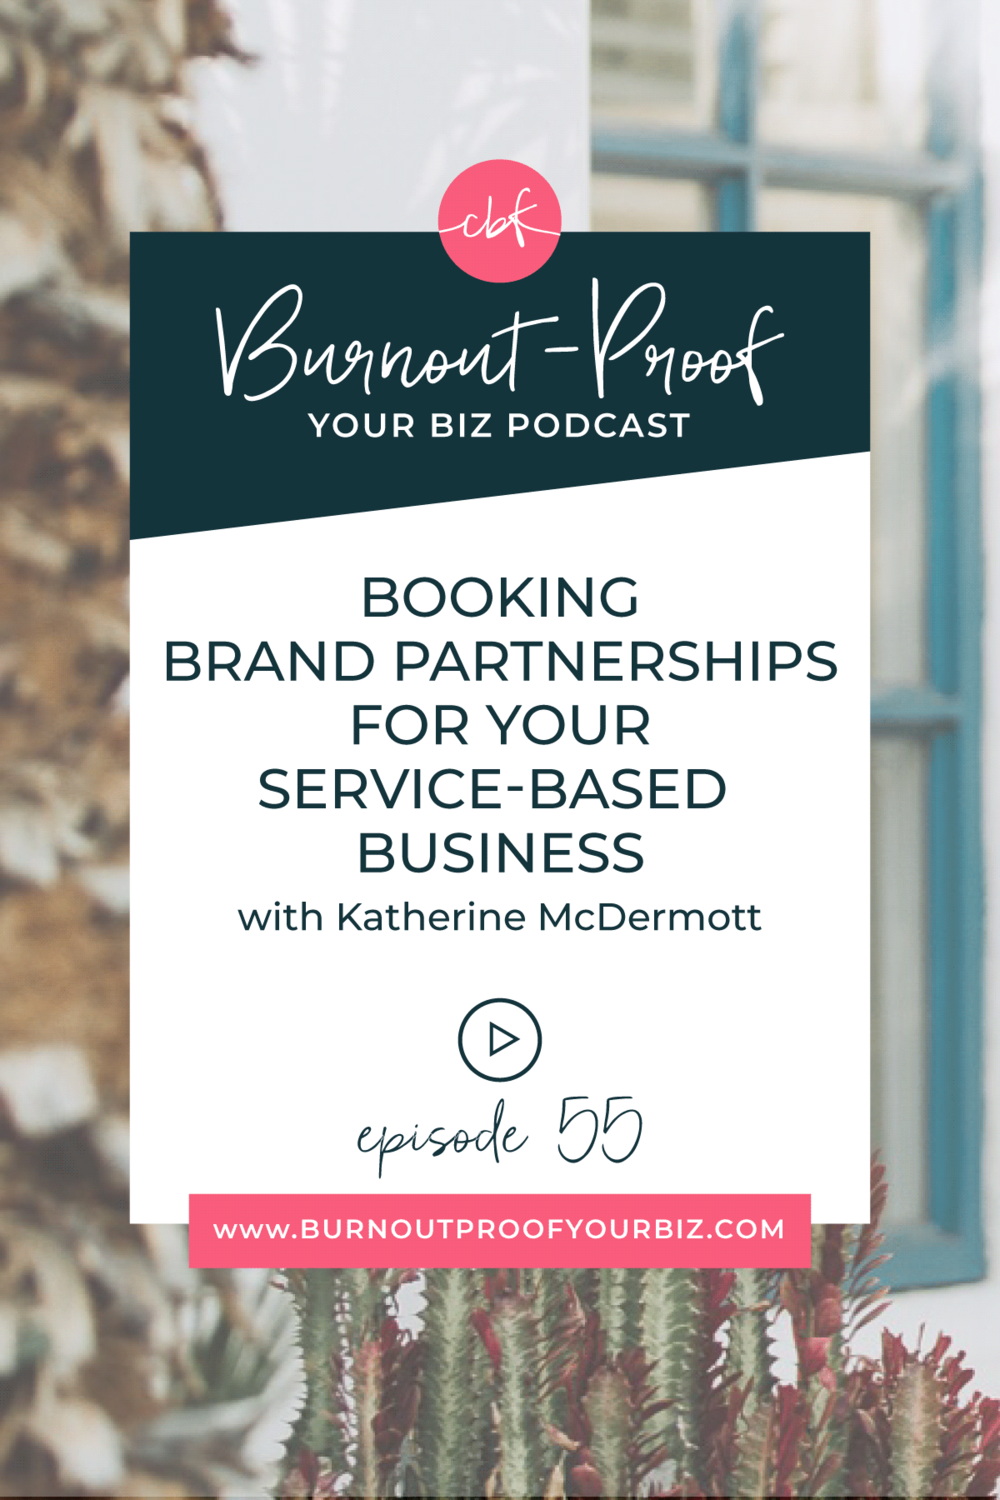 BOOK BRAND PARTNERSHIPS FOR YOUR SERVICE-BASED BUSINESS on Burnout-Proof Your Biz Podcast with Chelsea B Foster | Episode 055 - PR Strategies to Steal From Influencers and Use in Your Service-Based Business with Katherine McDermott of Slightly Savvy | Learn how to run your biz and live your dream life on your own terms without the fear of burnout.  |||  PUBLIC RELATIONS FOR SERVICE-BASED BUSINESSES | BRAND PARTNERSHIPS | PR STRATEGIES THAT INFLUENCERS USE | ENTREPRENEUR INFLUENCER | WORKING WITH BRANDS AS AN ENTREPRENEUR | BRAND COLLABORATIONS | AFFILIATE MARKETING | BECOMING AN INFLUENCER | OUTSOURCING | BUSINESS COACH | WORKFLOW & PRODUCTIVITY SPECIALIST | SYSTEMS & ORGANIZATION SPECIALIST FOR COACHES | ADD MORE FREEDOM TO YOUR LIFE | BUSINESS COACH FOR BLOGGERS